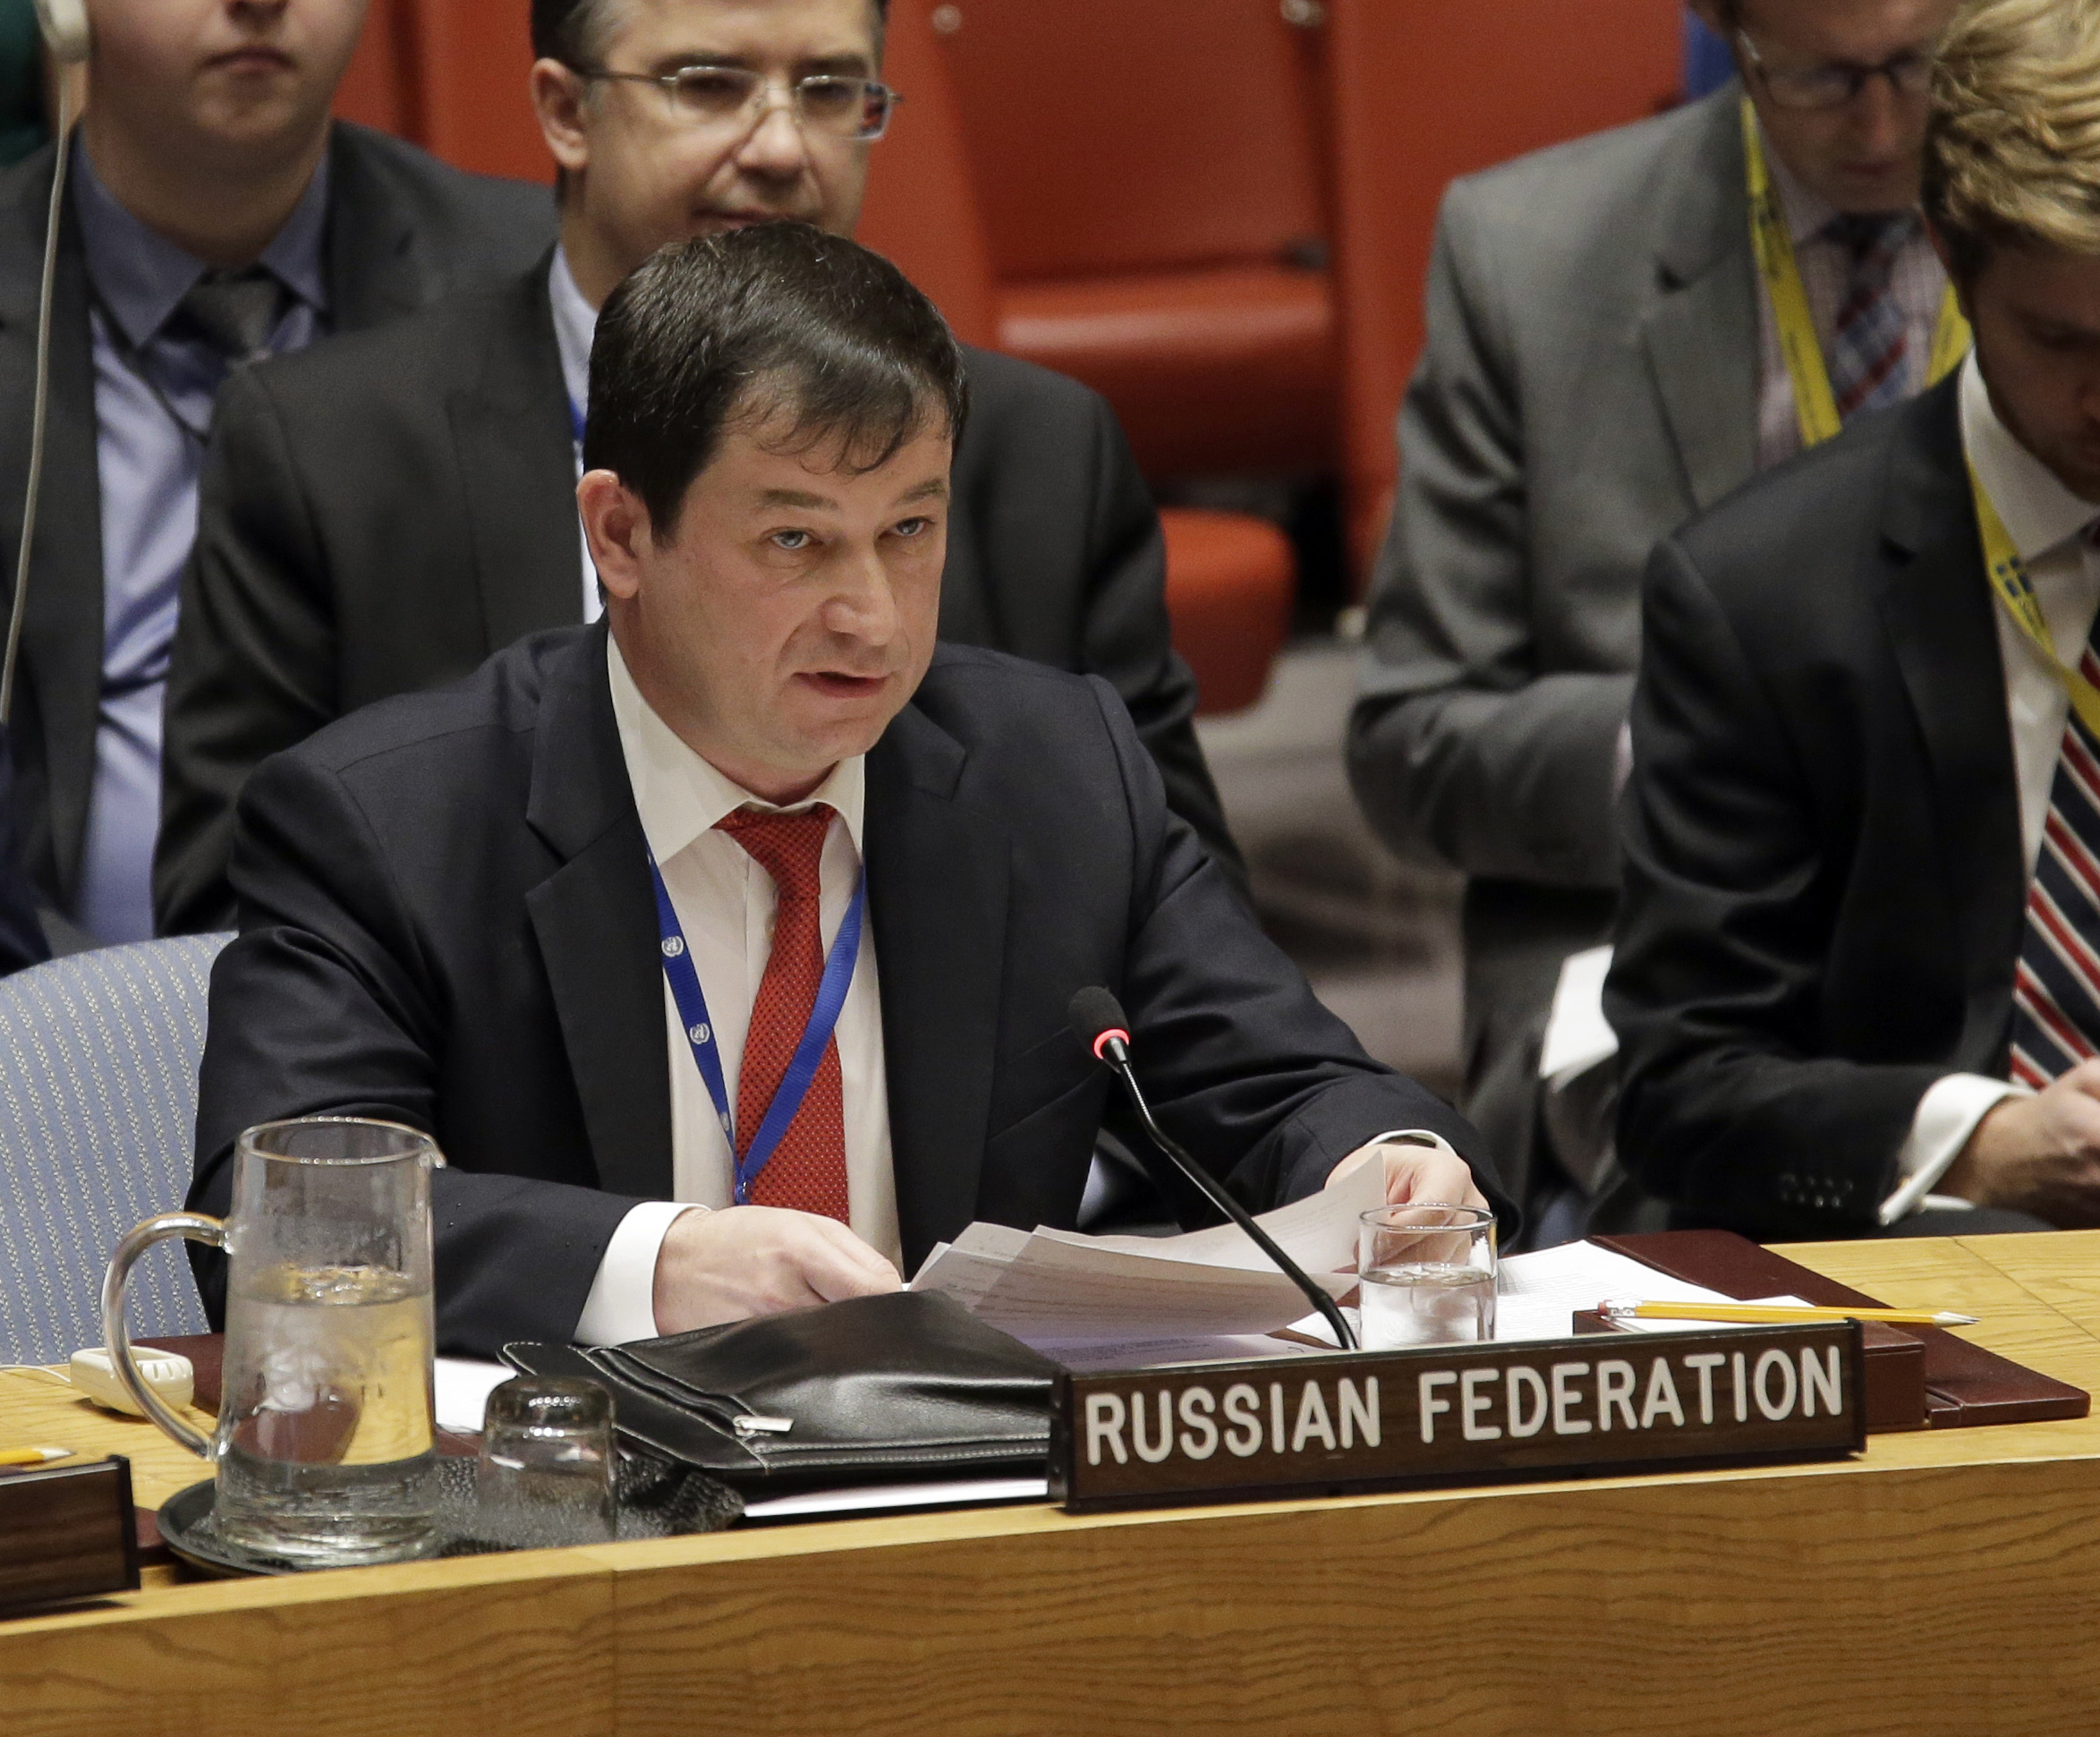 Russian Deputy Ambassador to the United Nations Dmitry Polyanskiy speaks during a U.N. Security Council meeting at United Nations headquarters, Nov. 26, 2018.